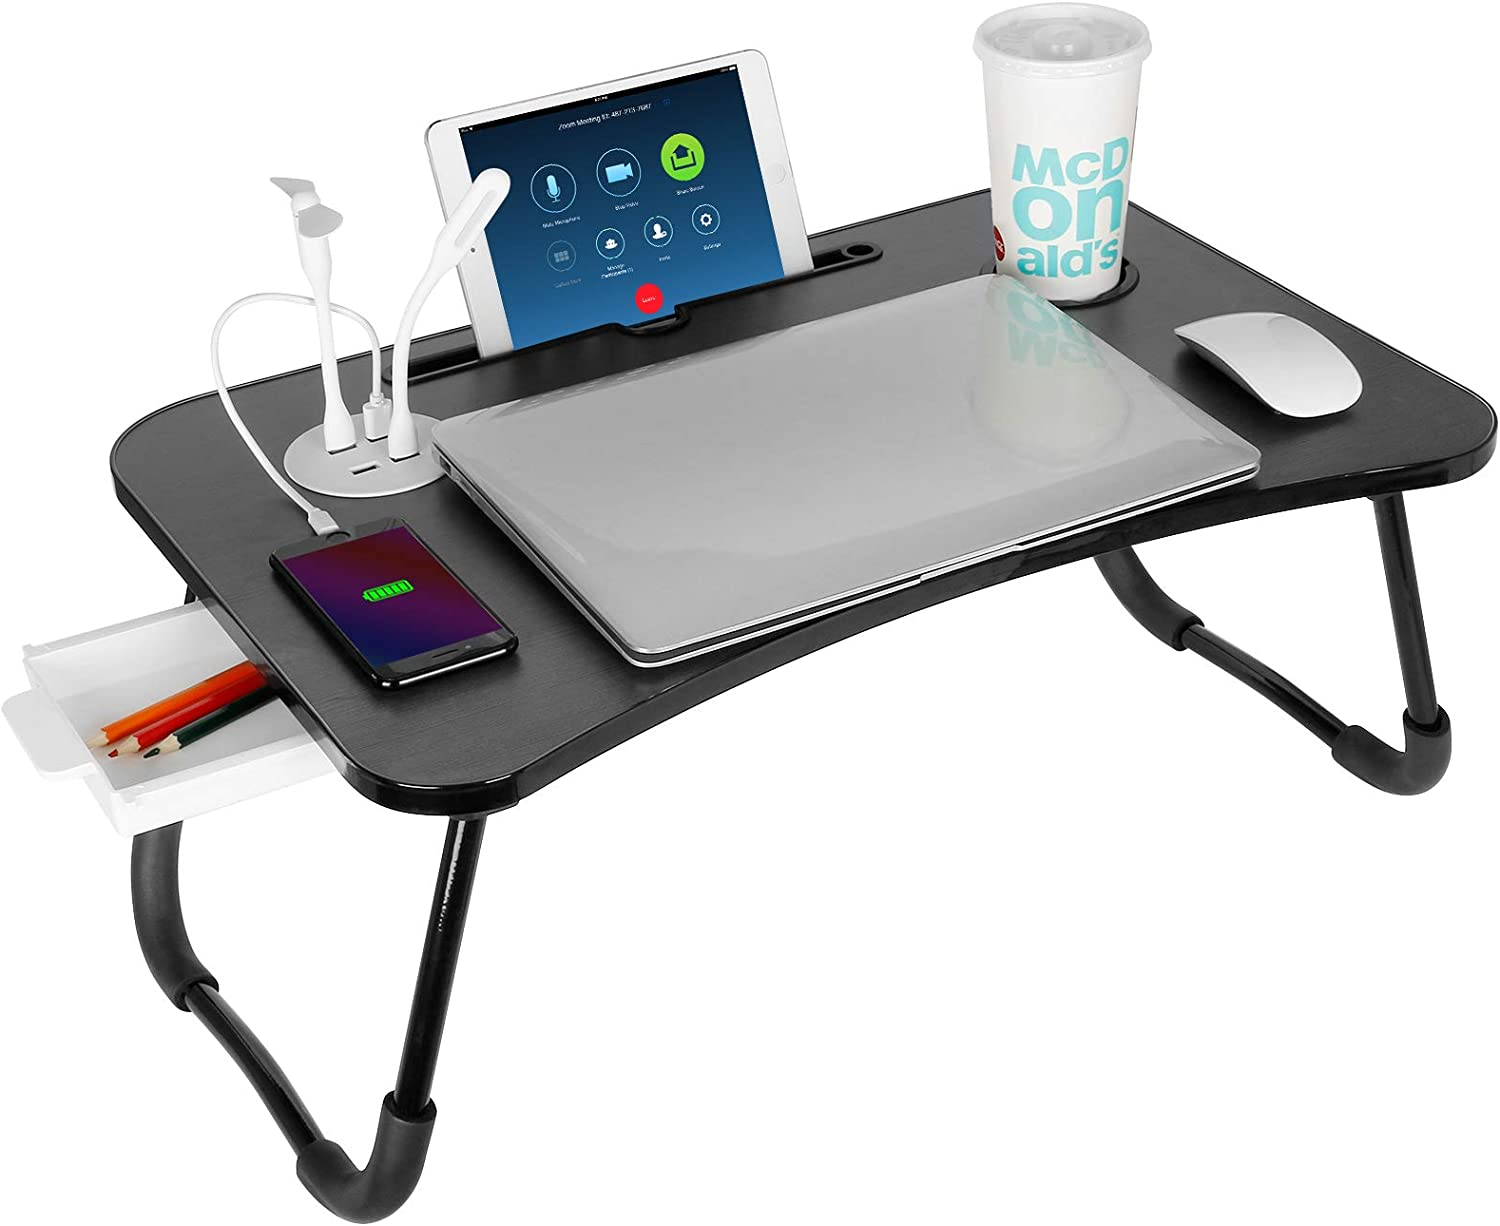 Laptop Bed Table with USB, VLikeze Foldable Lap Desk for Bed, Portable Breakfast Tray Table Reading Holder for Sofa Floor Writing Eating Working (Black)